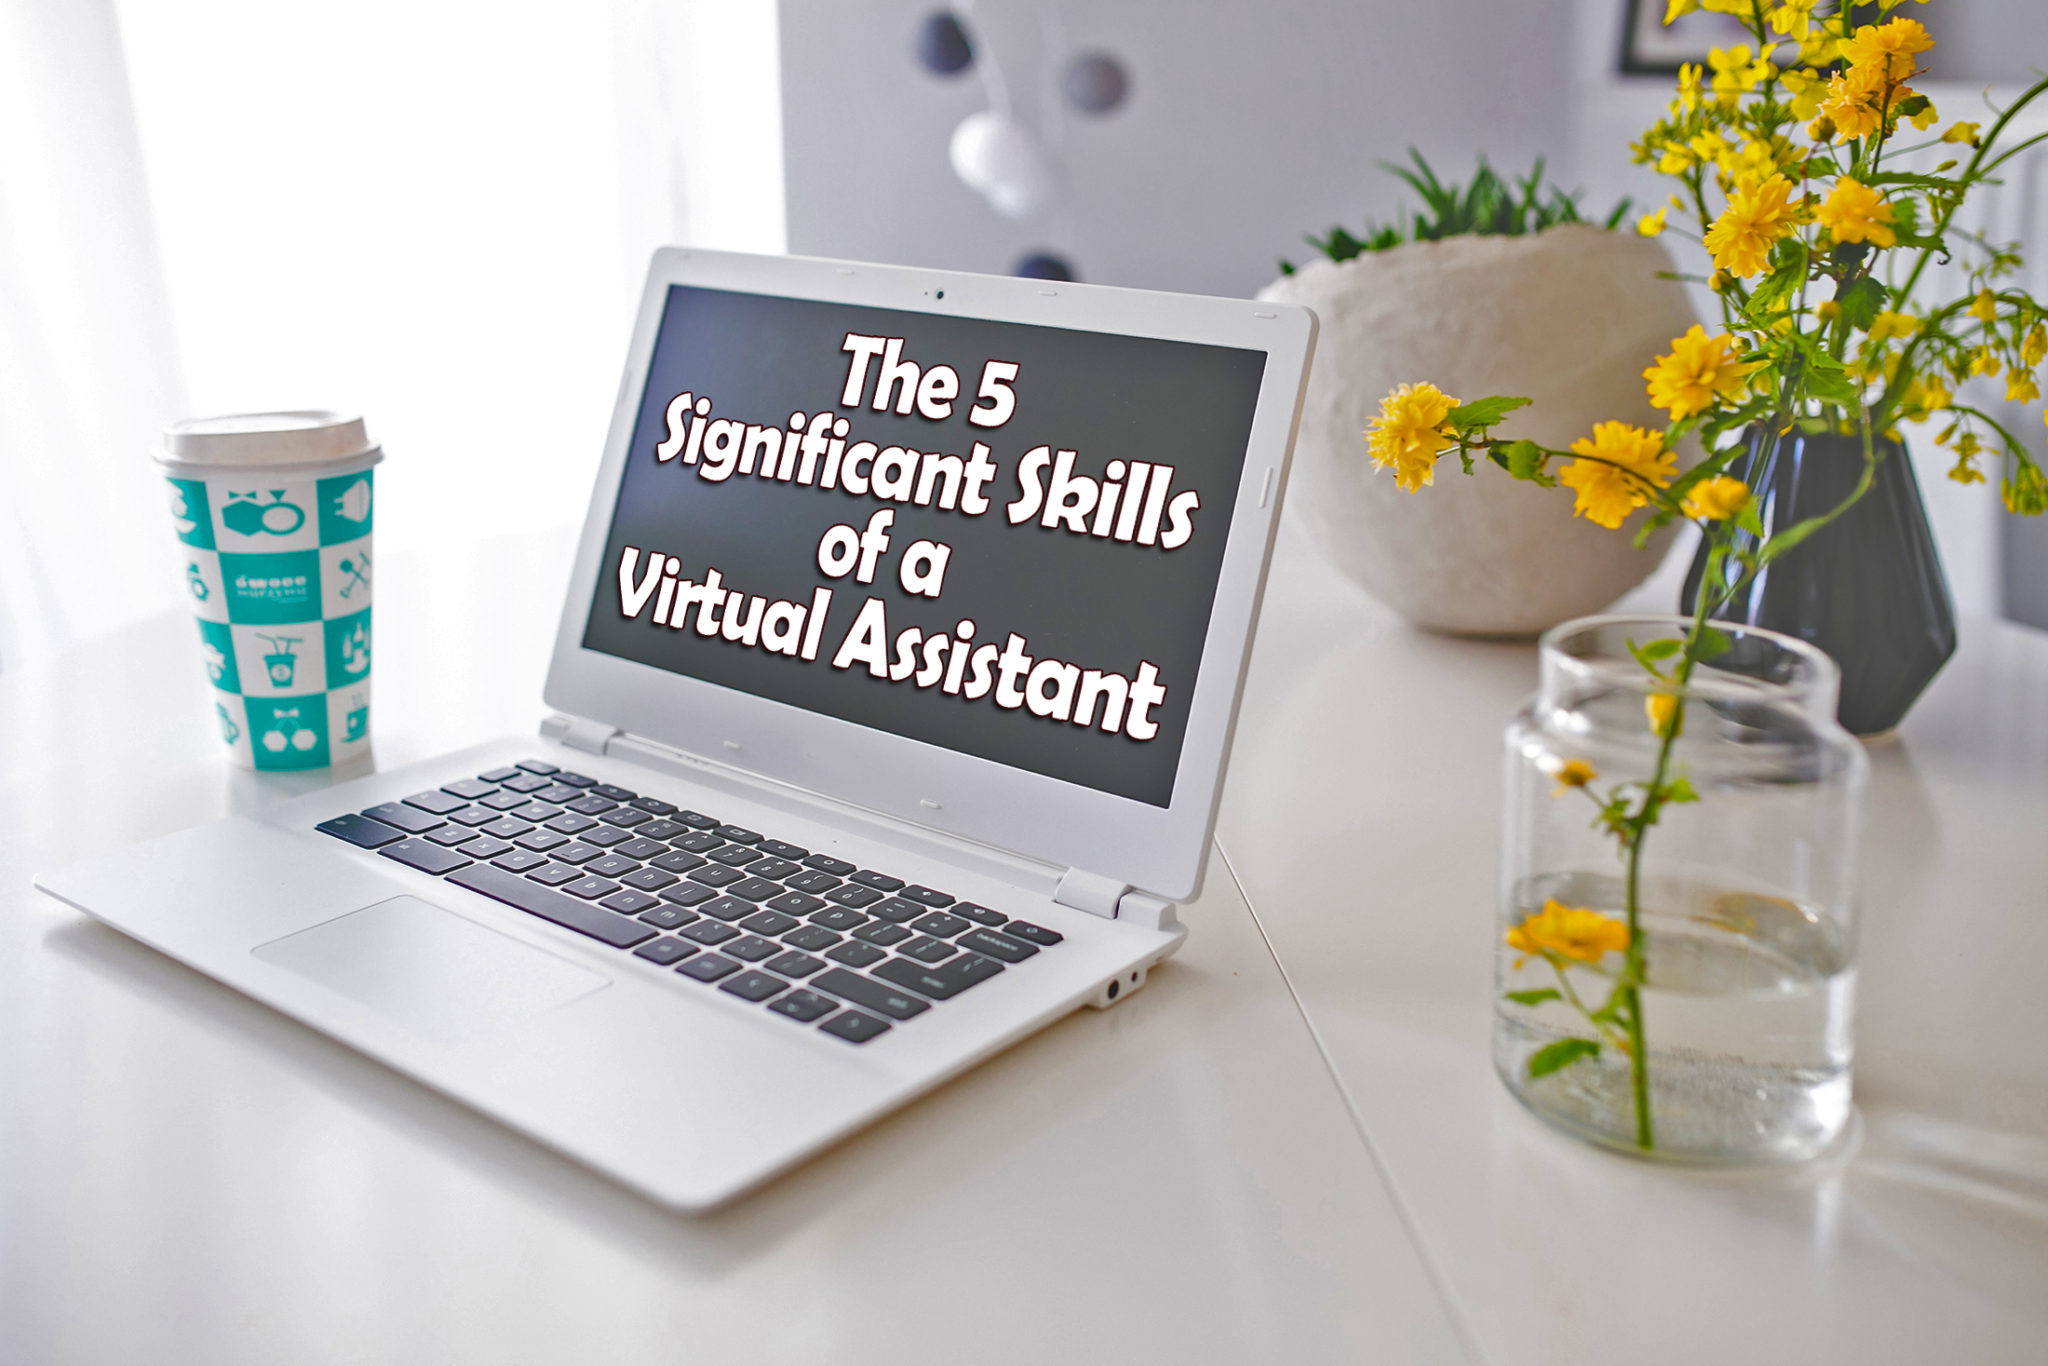 The 5 Significant Skills of a Virtual Assistant